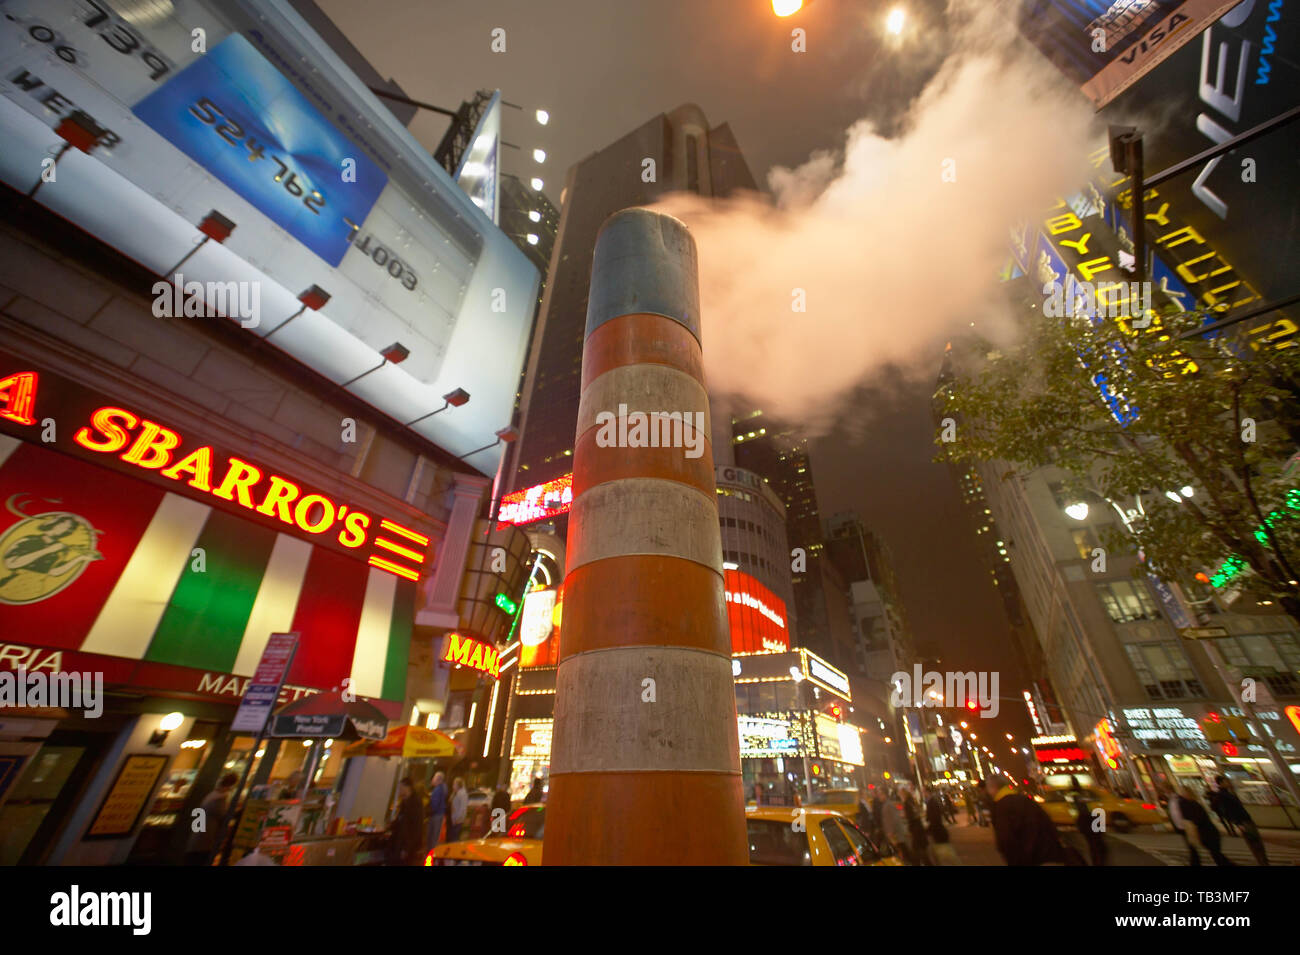 Orange steam vent in street in Times Square at West 49th Street and Broadway, New York, NY - Stock Image